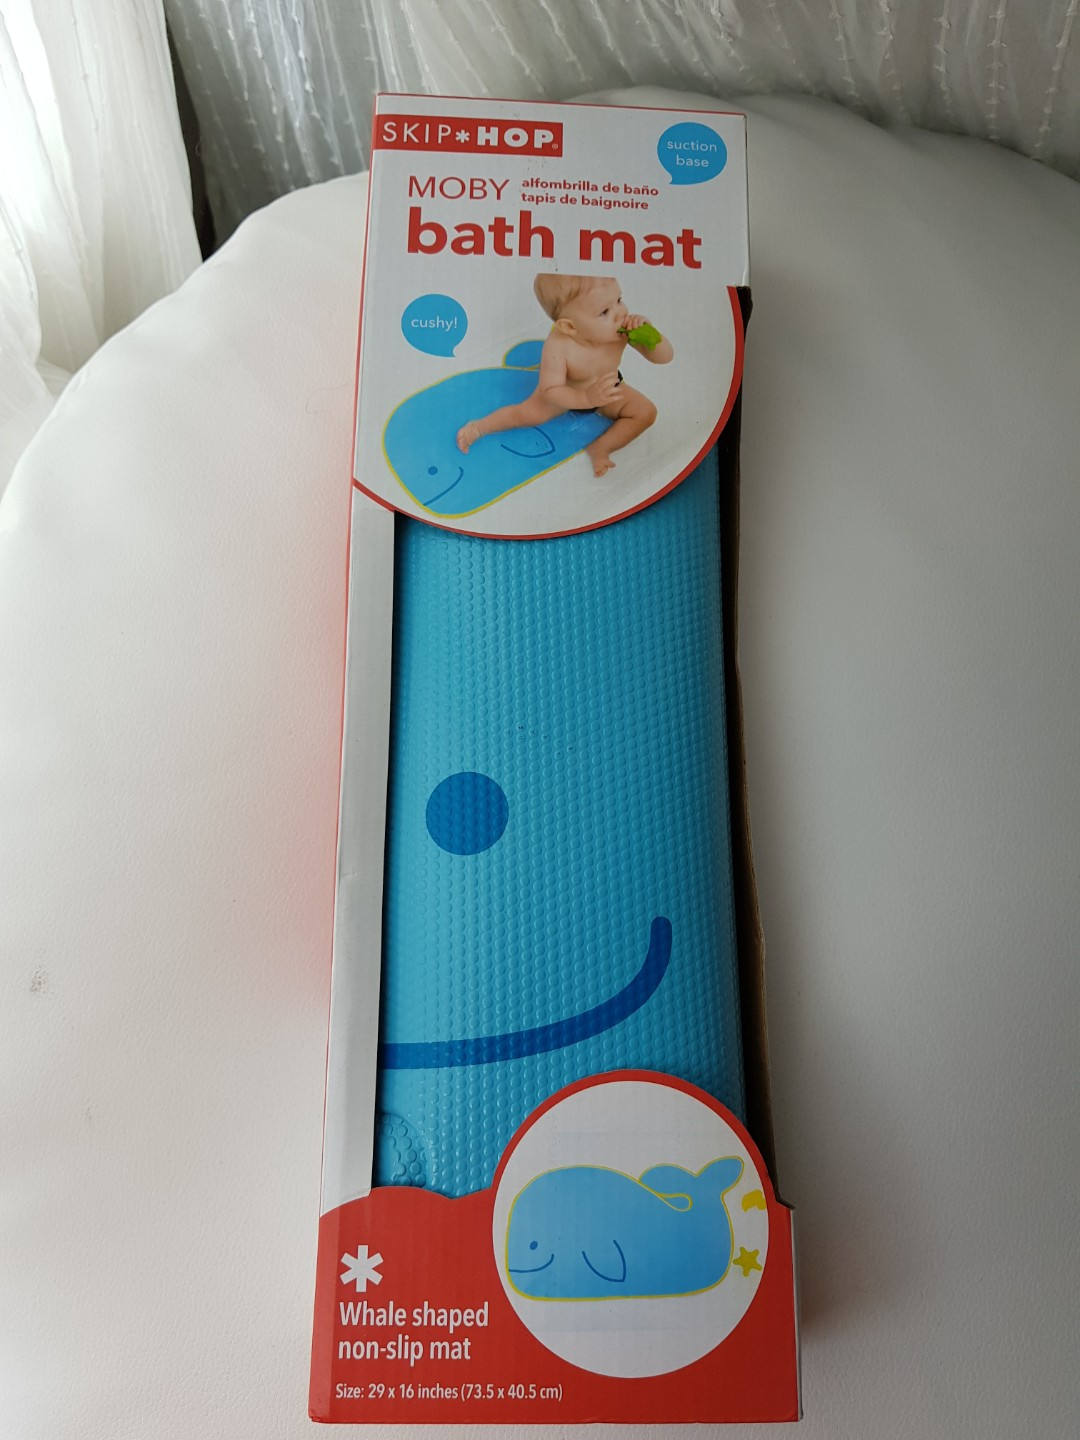 products skip mat stage smart moby baby sling zone bath tub hop mats